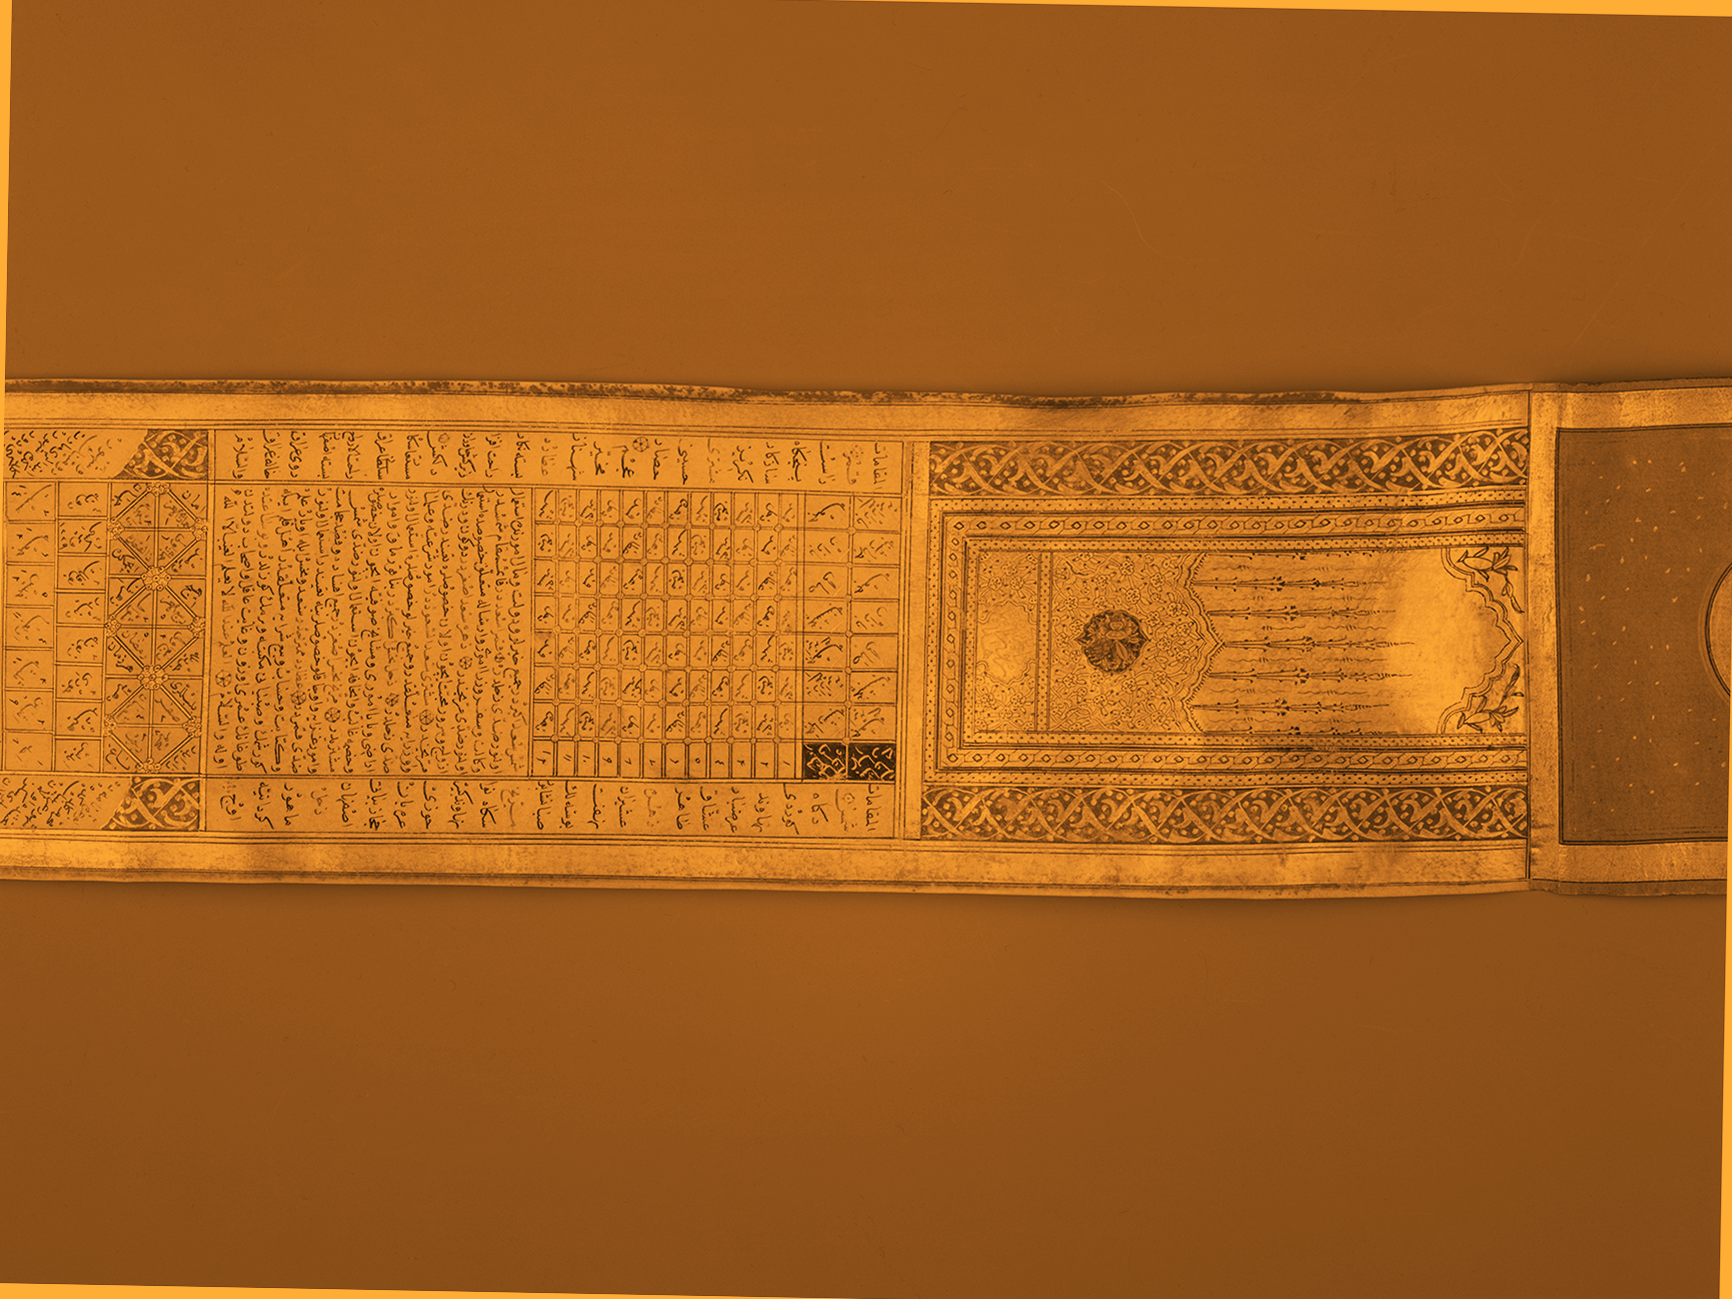 Katib - Louis E. and Theresa S. Seley Purchase Fund for Islamic Art, 1990 © Metropolitan Museum